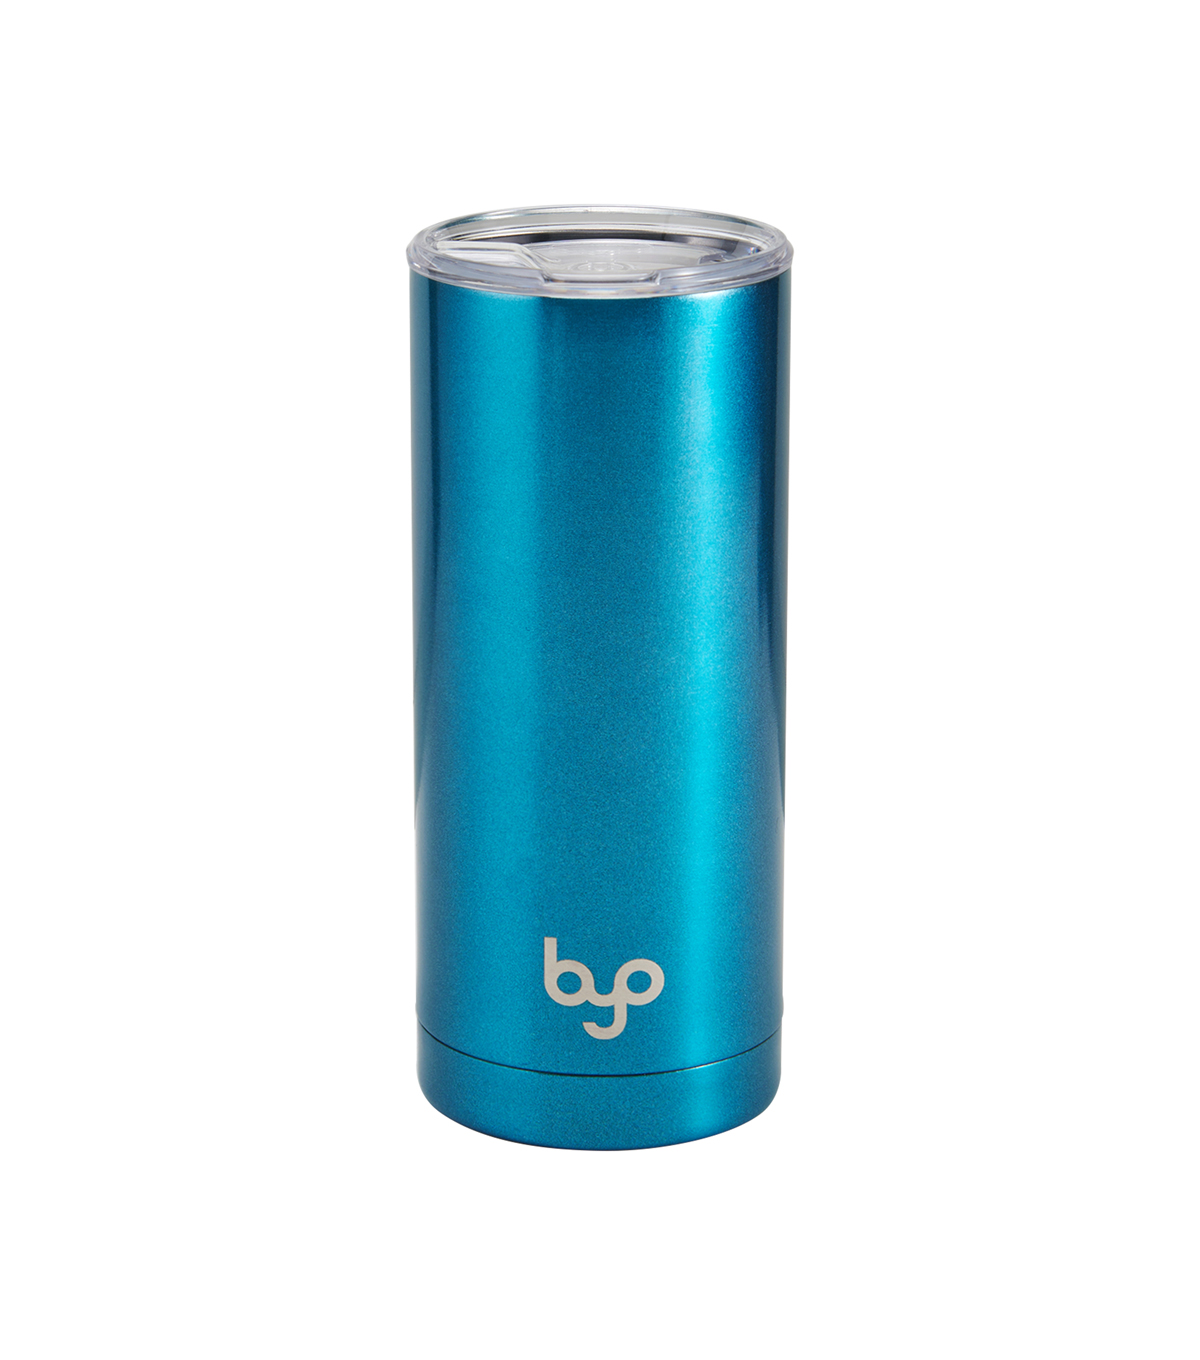 e597958ab56 BYO 20 oz. Double-walled Stainless Steel Tumbler with Tritan Lid-Teal